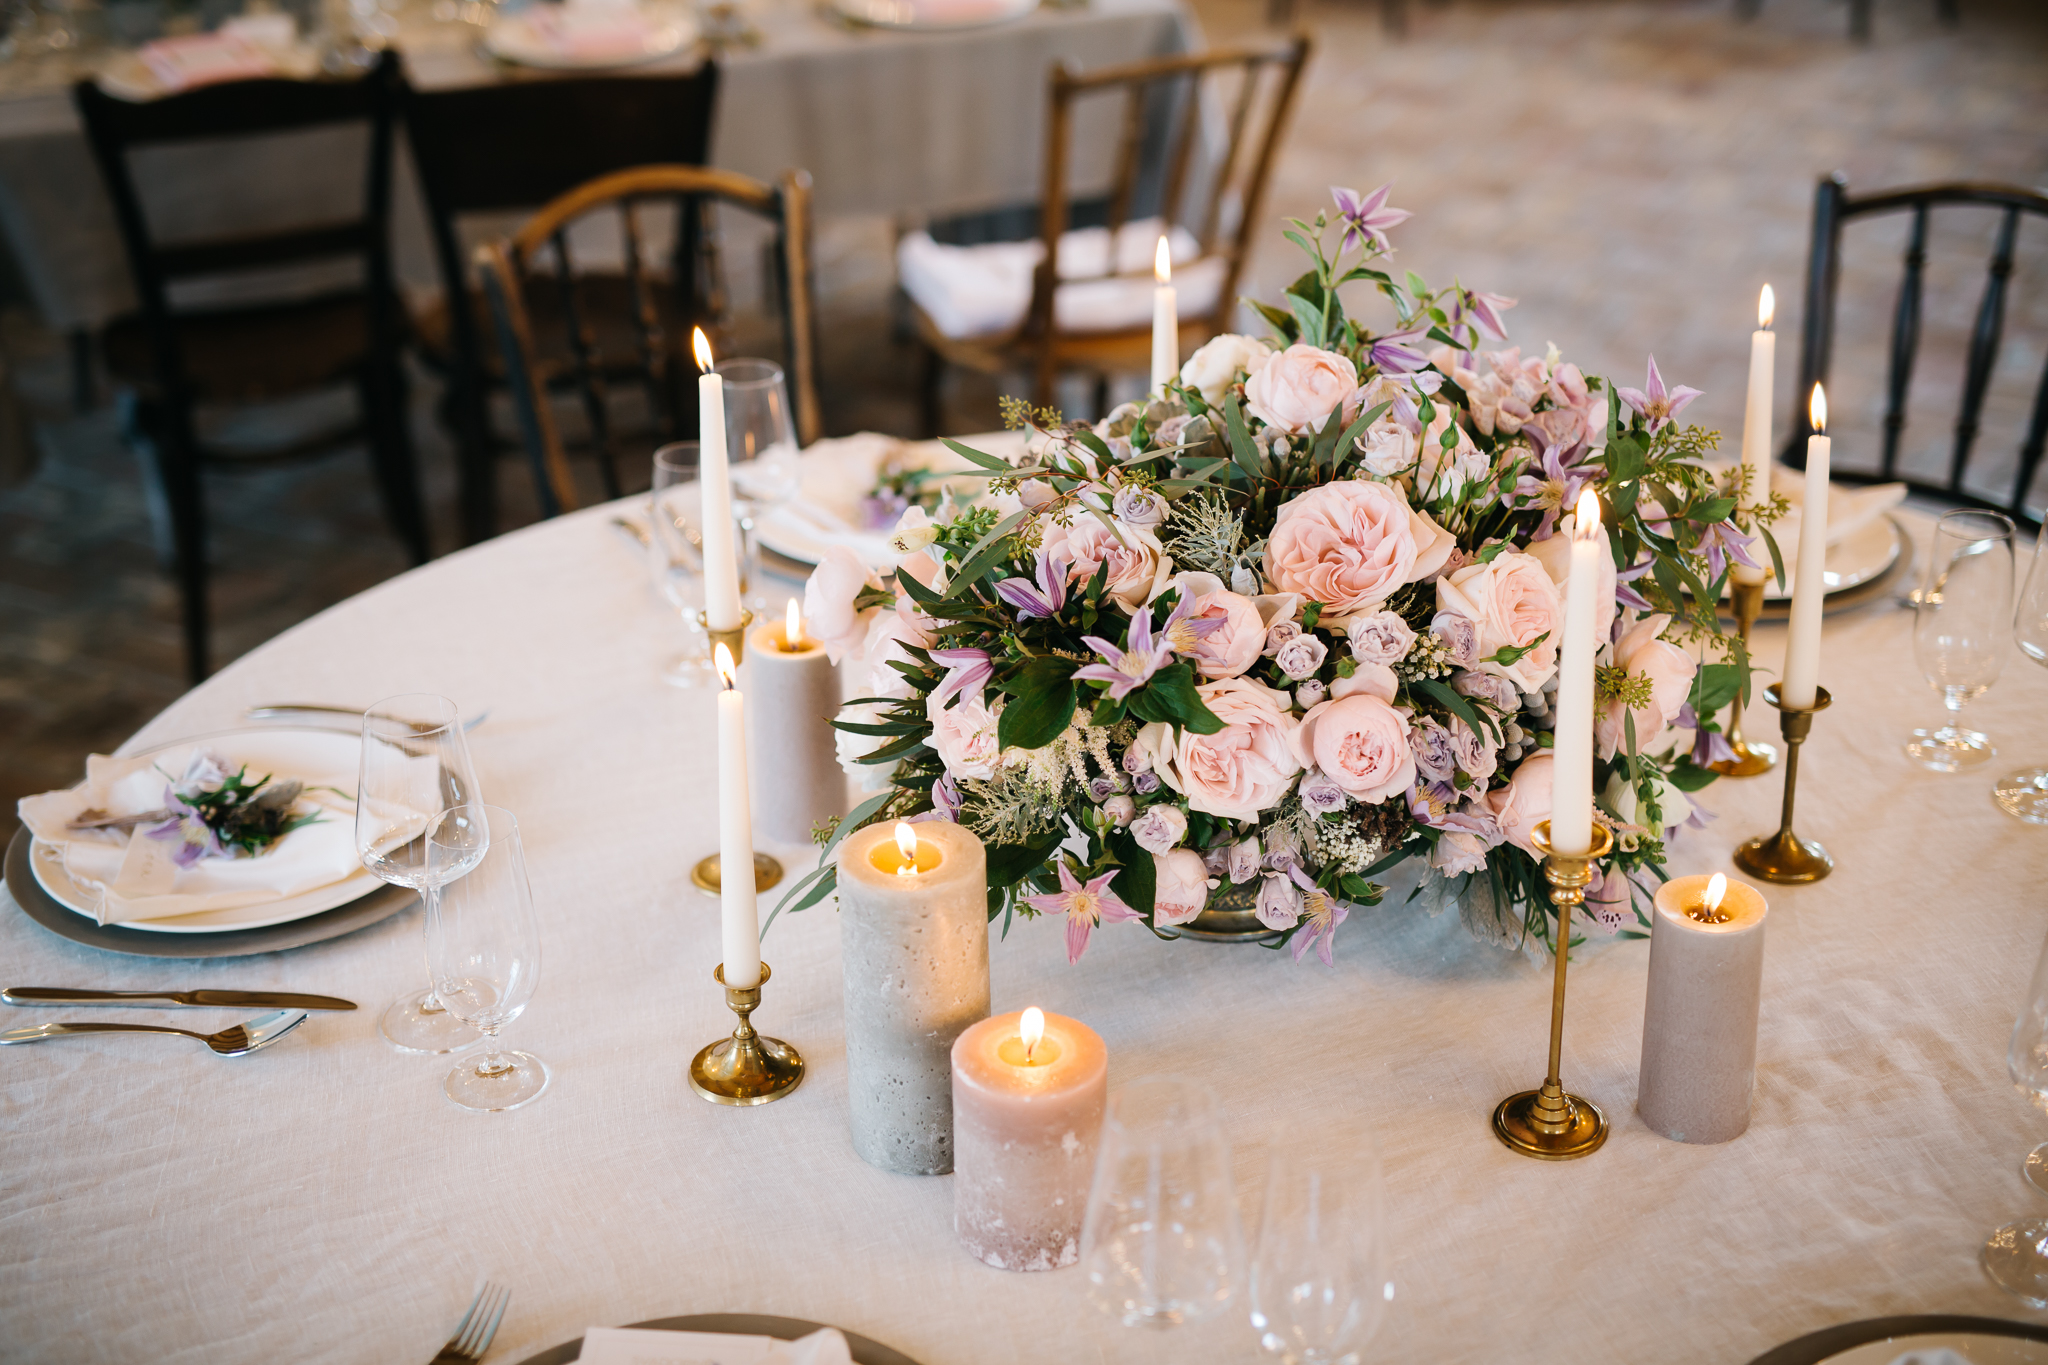 Blush roses clematis dusty green wedding centrepiece by PONK Rentals at Wiegerova Vila Slovakia